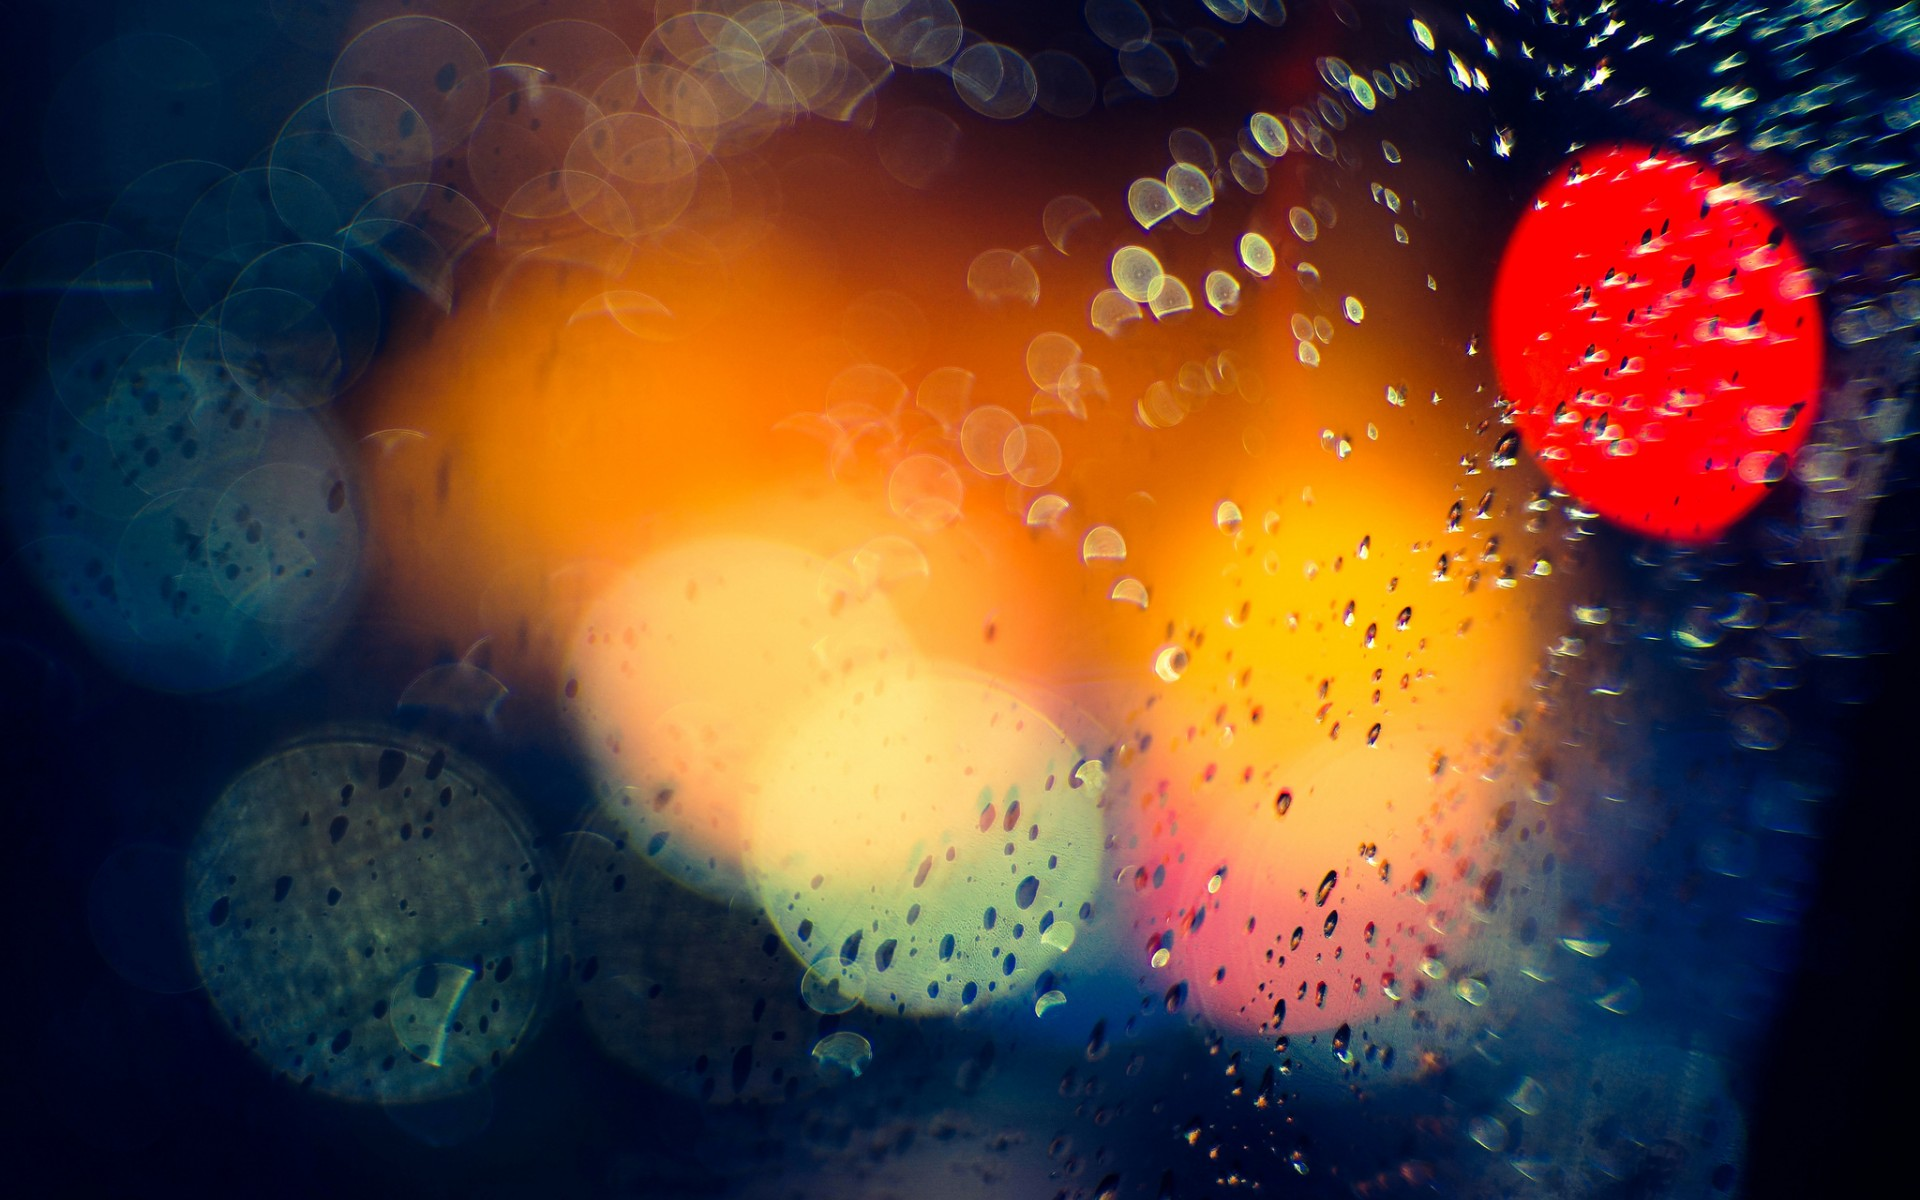 colorful lights wallpaper 34020